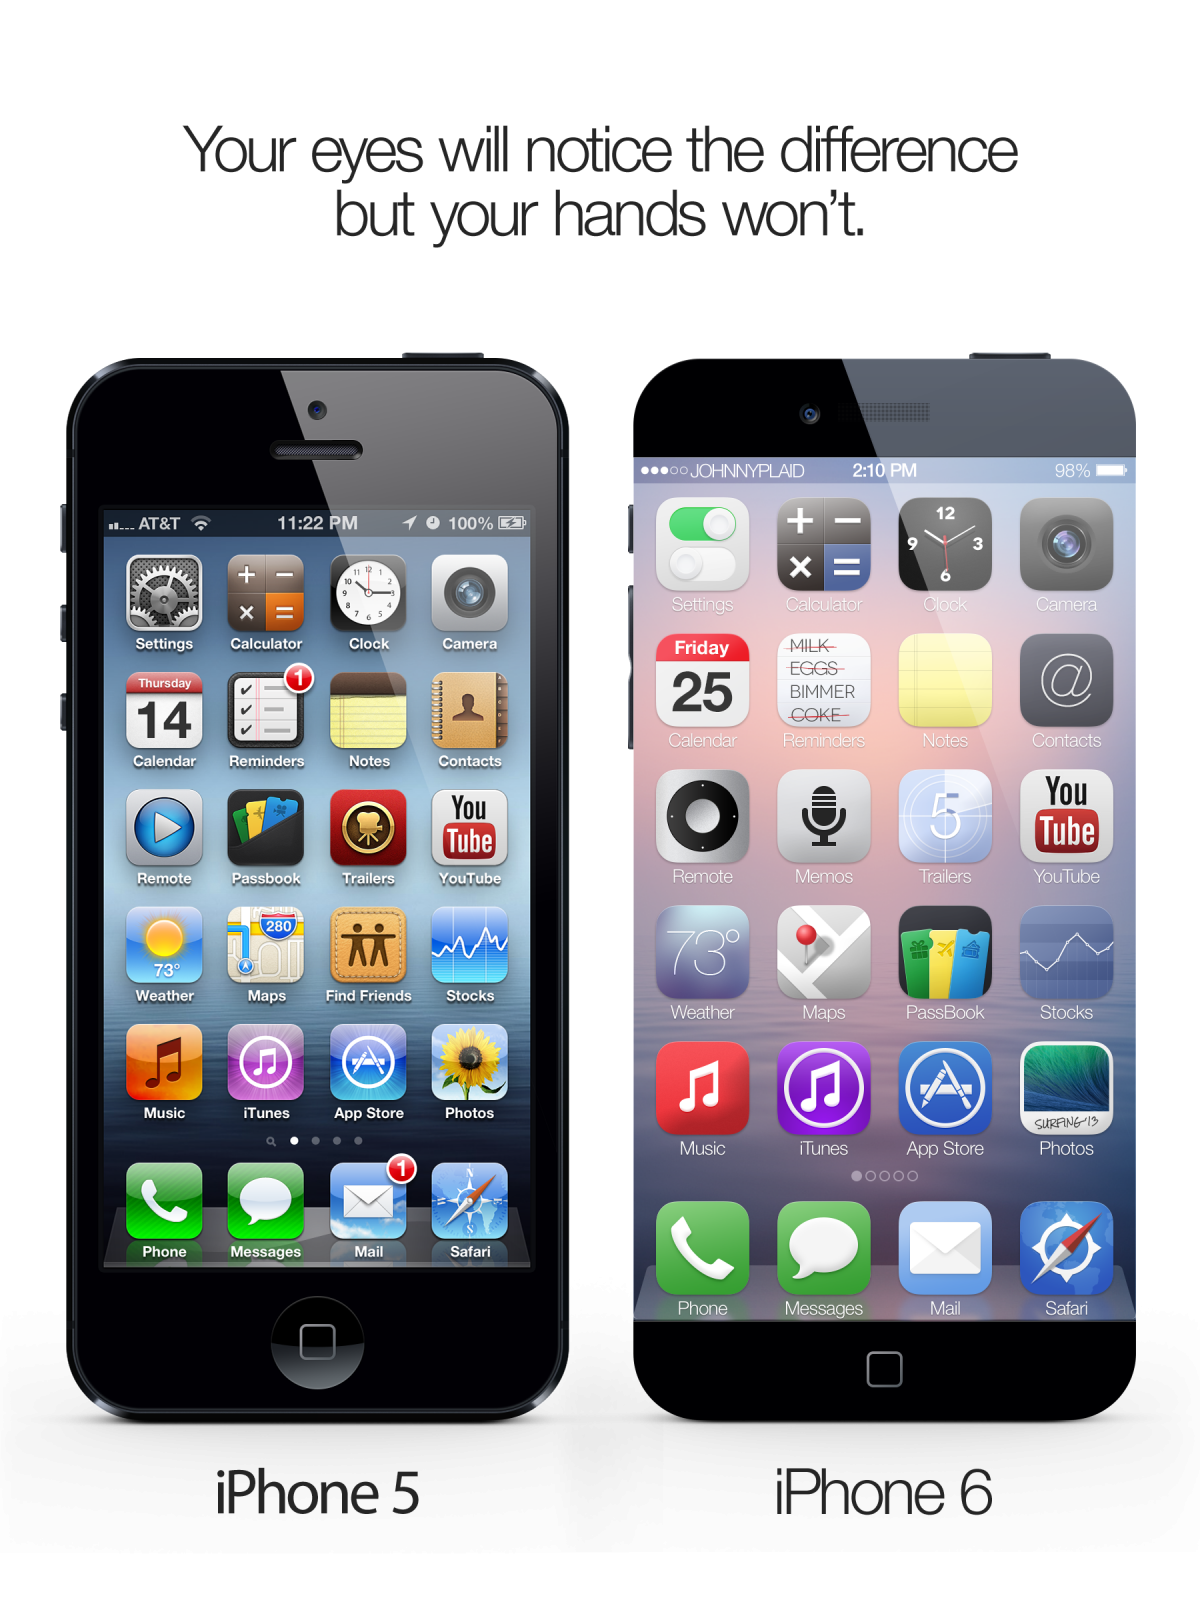 for-comparison-heres-the-concept-next-to-the-current-iphone-5-this-concept-imagines-the-iphone-6-as-pretty-much-the-same-size-as-the-5-but-you-get-more-screen-real-estate-because-of-the-edge-to-edge-display.jpg